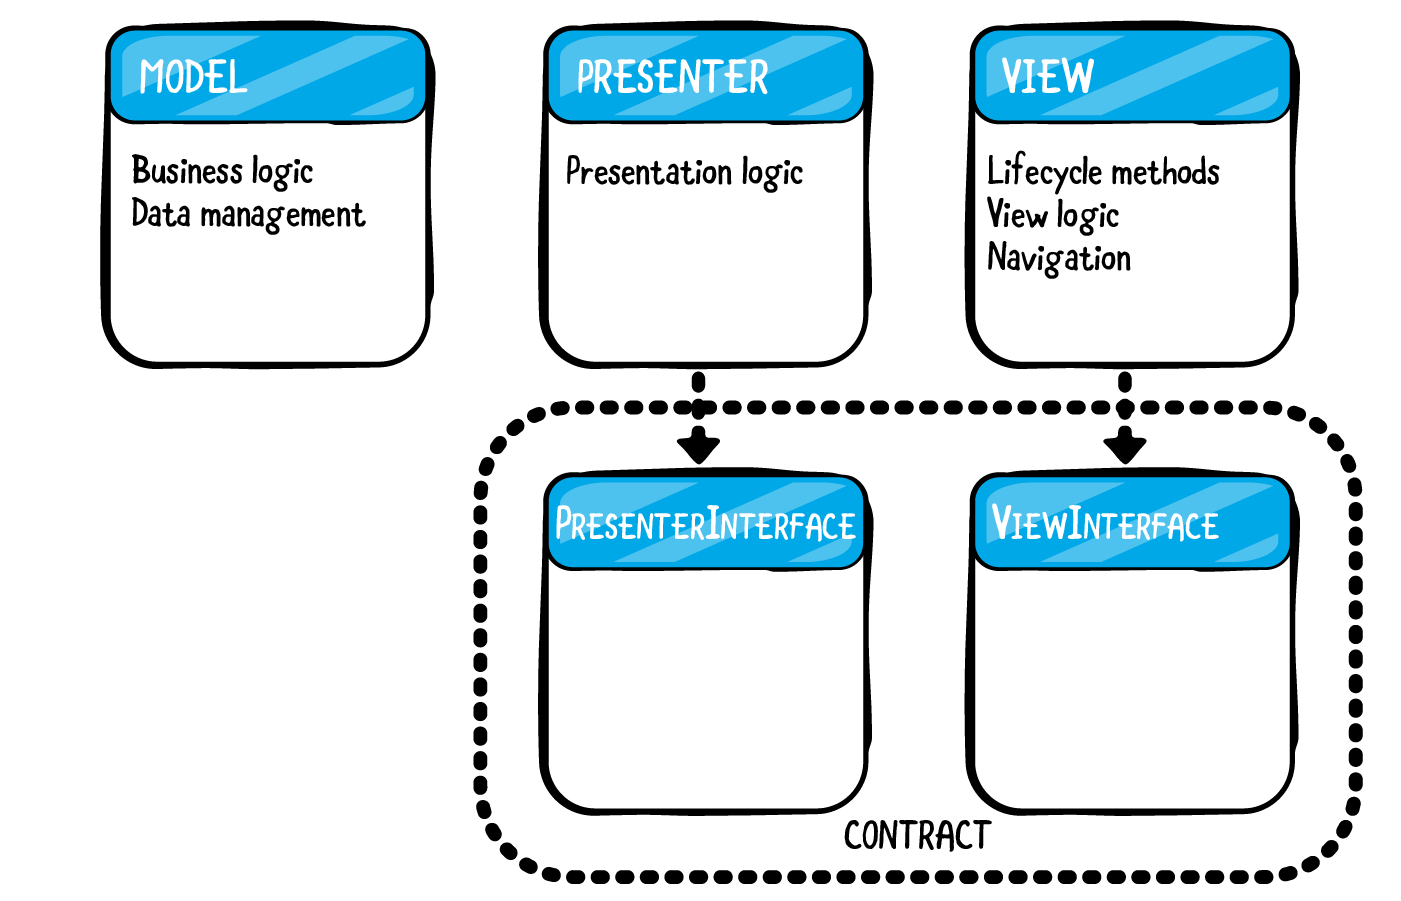 Create interfaces for the Presenter and View